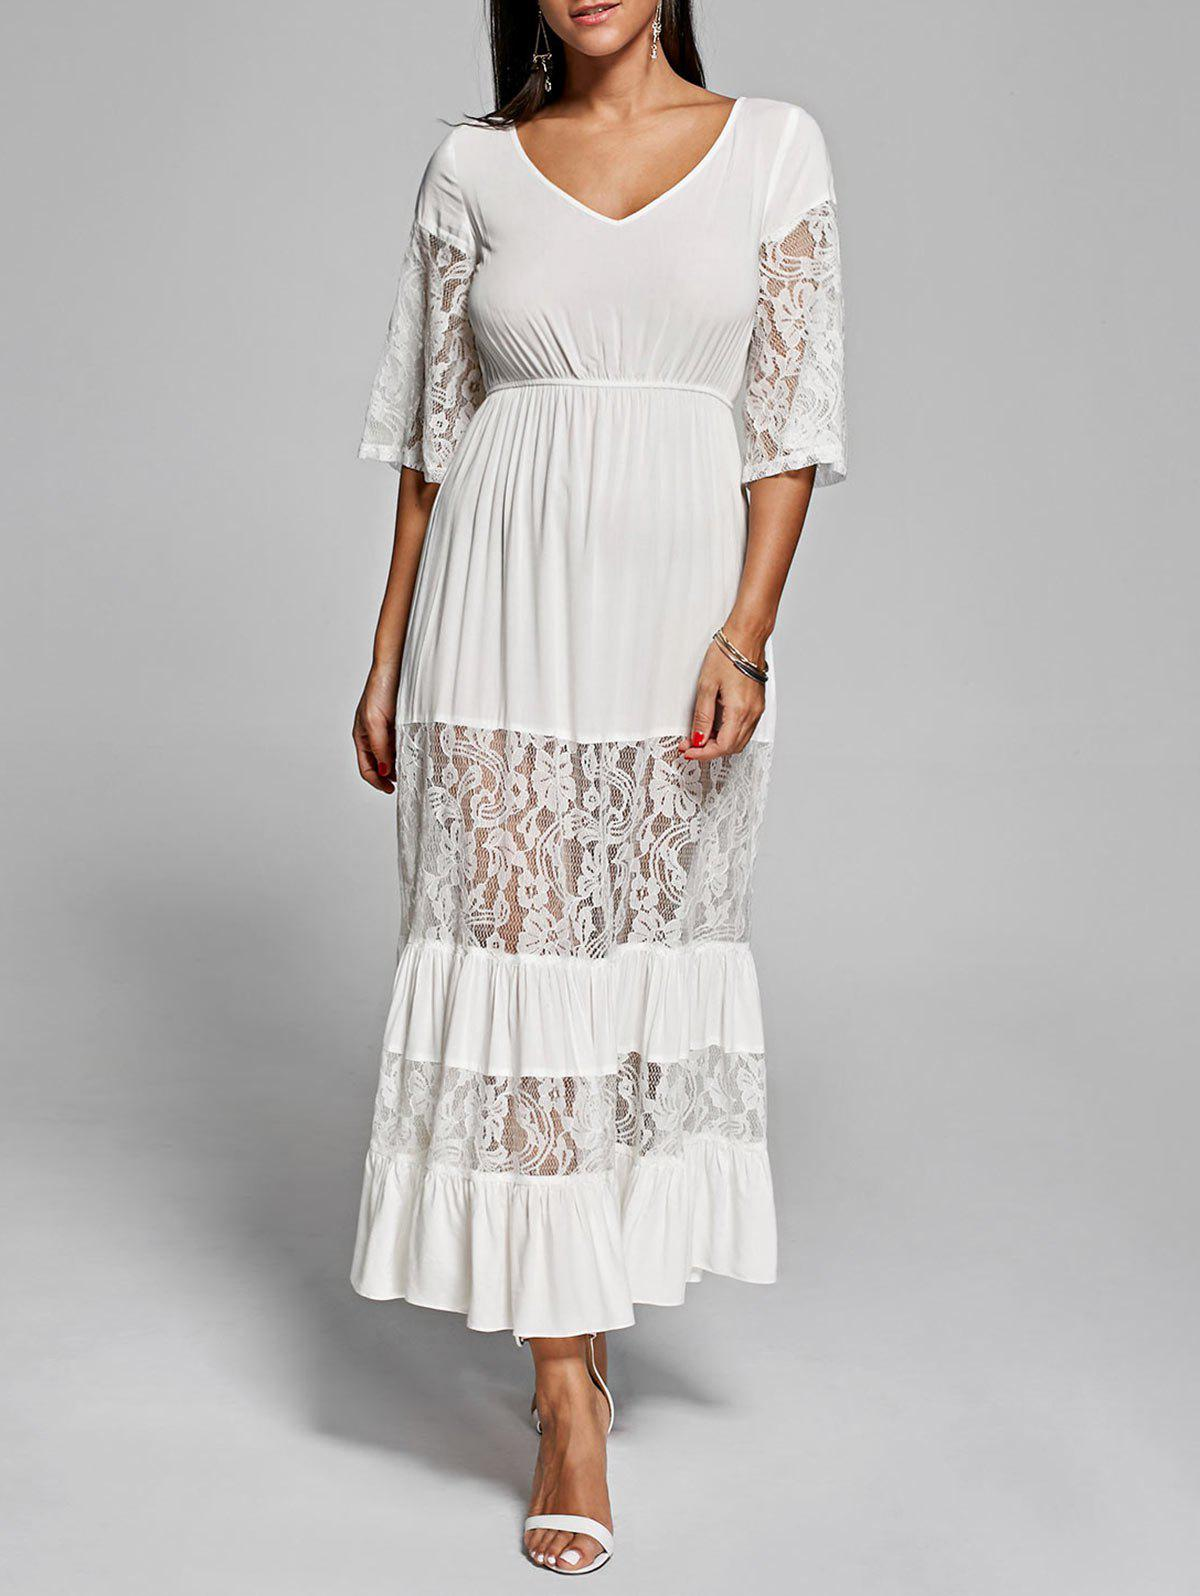 Lace Insert V Neck Romantique Boho Maxi Dress - Blanc Cassé L